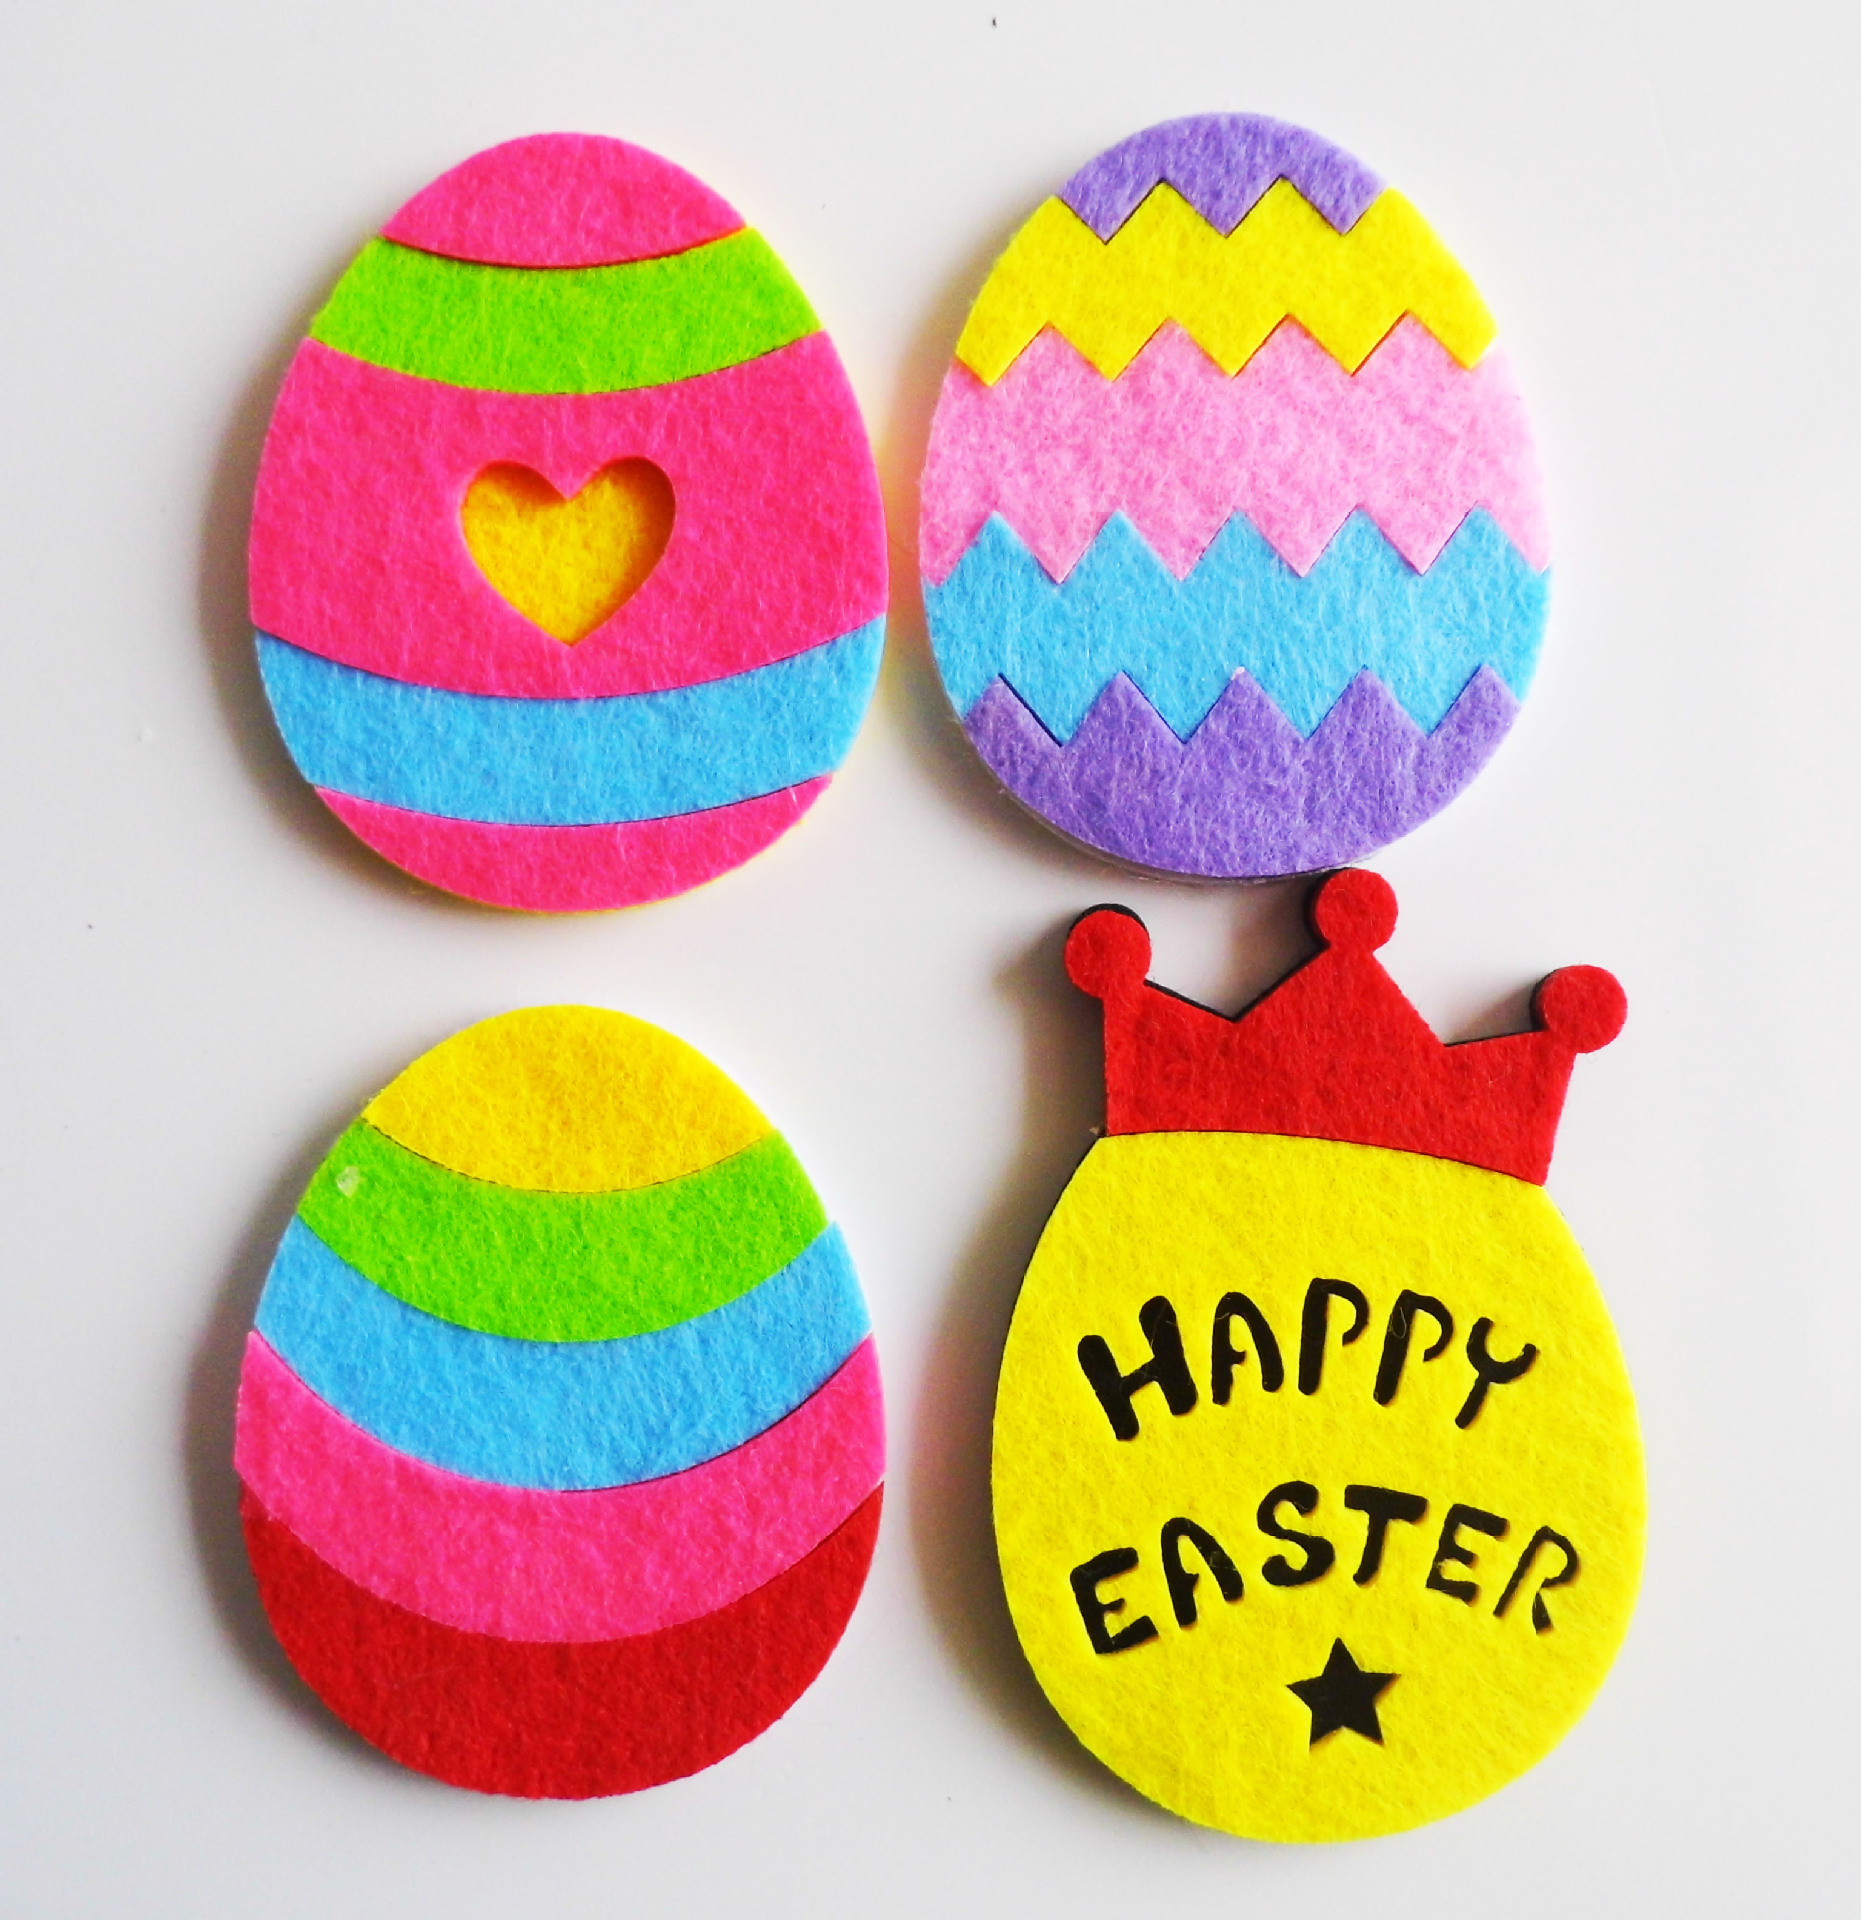 Happy Easter Day with Crown Easter Wall Home Deco Easter Party Favor